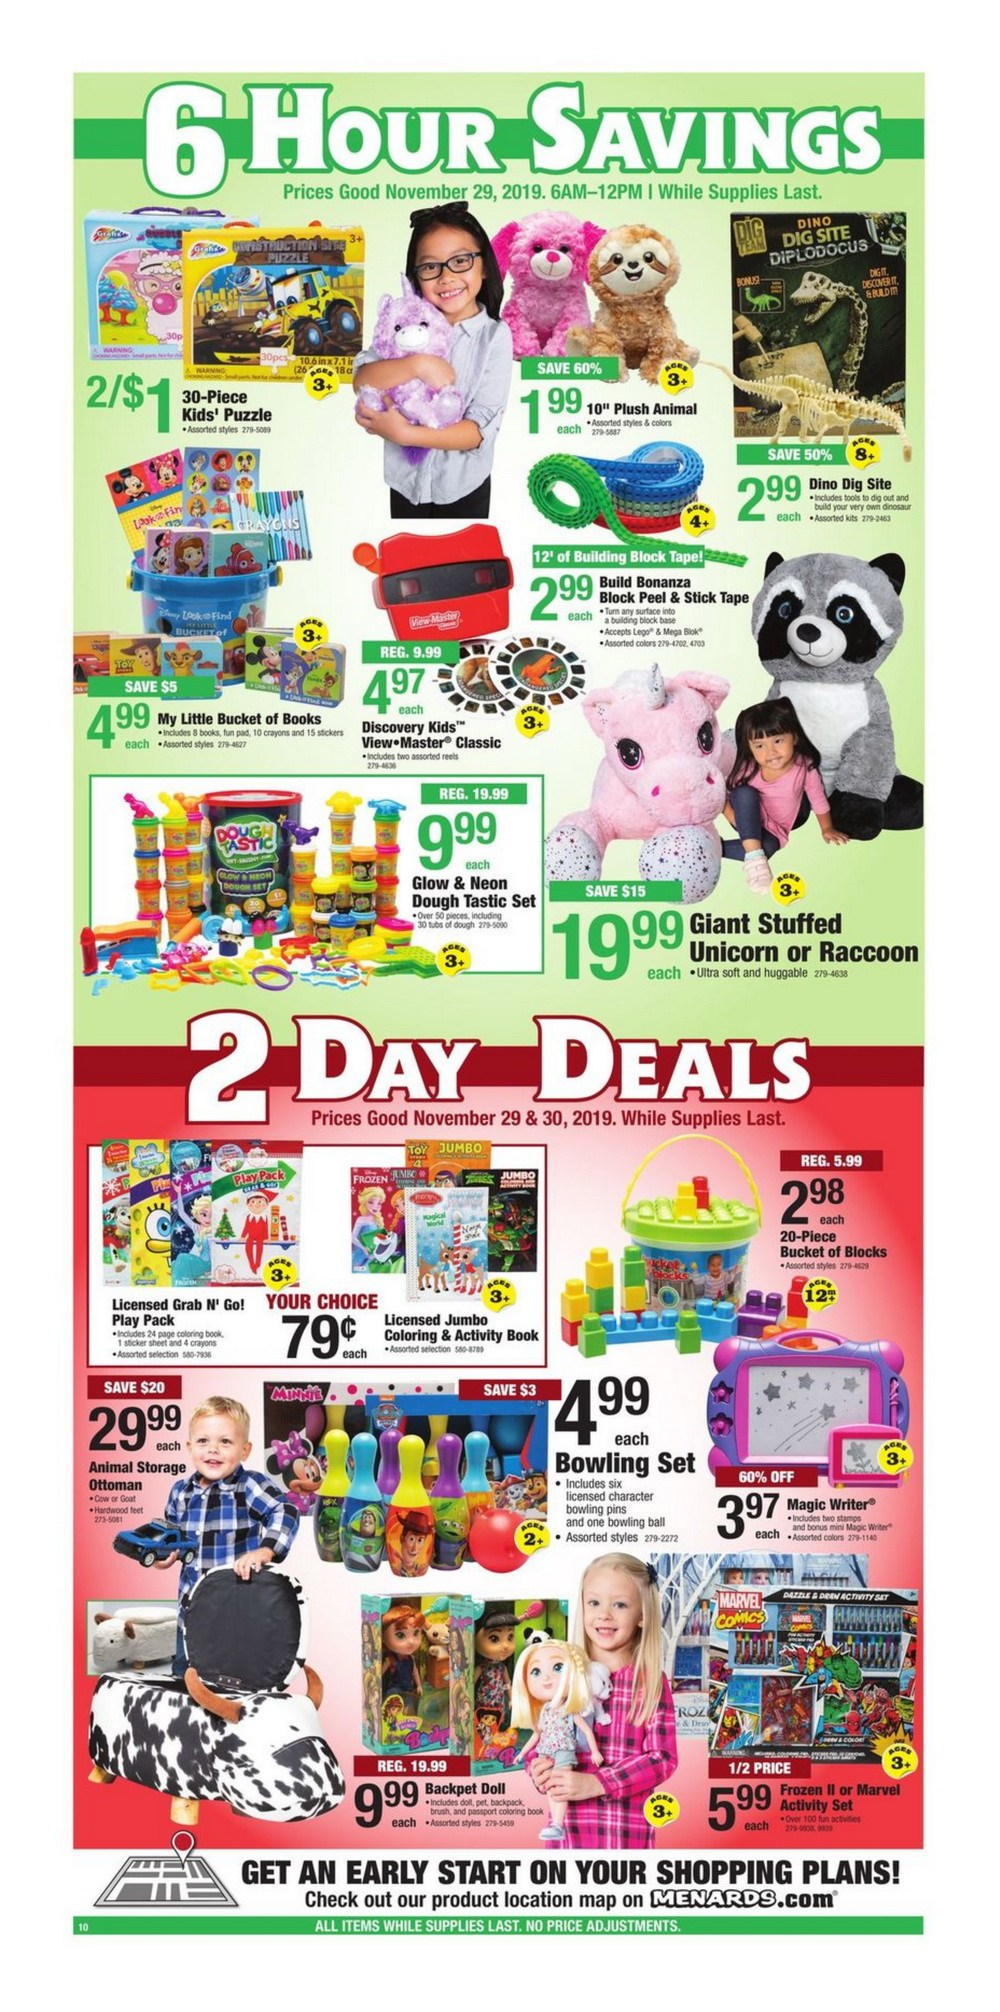 Menards Black Friday Sale Nov 29 Nov 30 2019